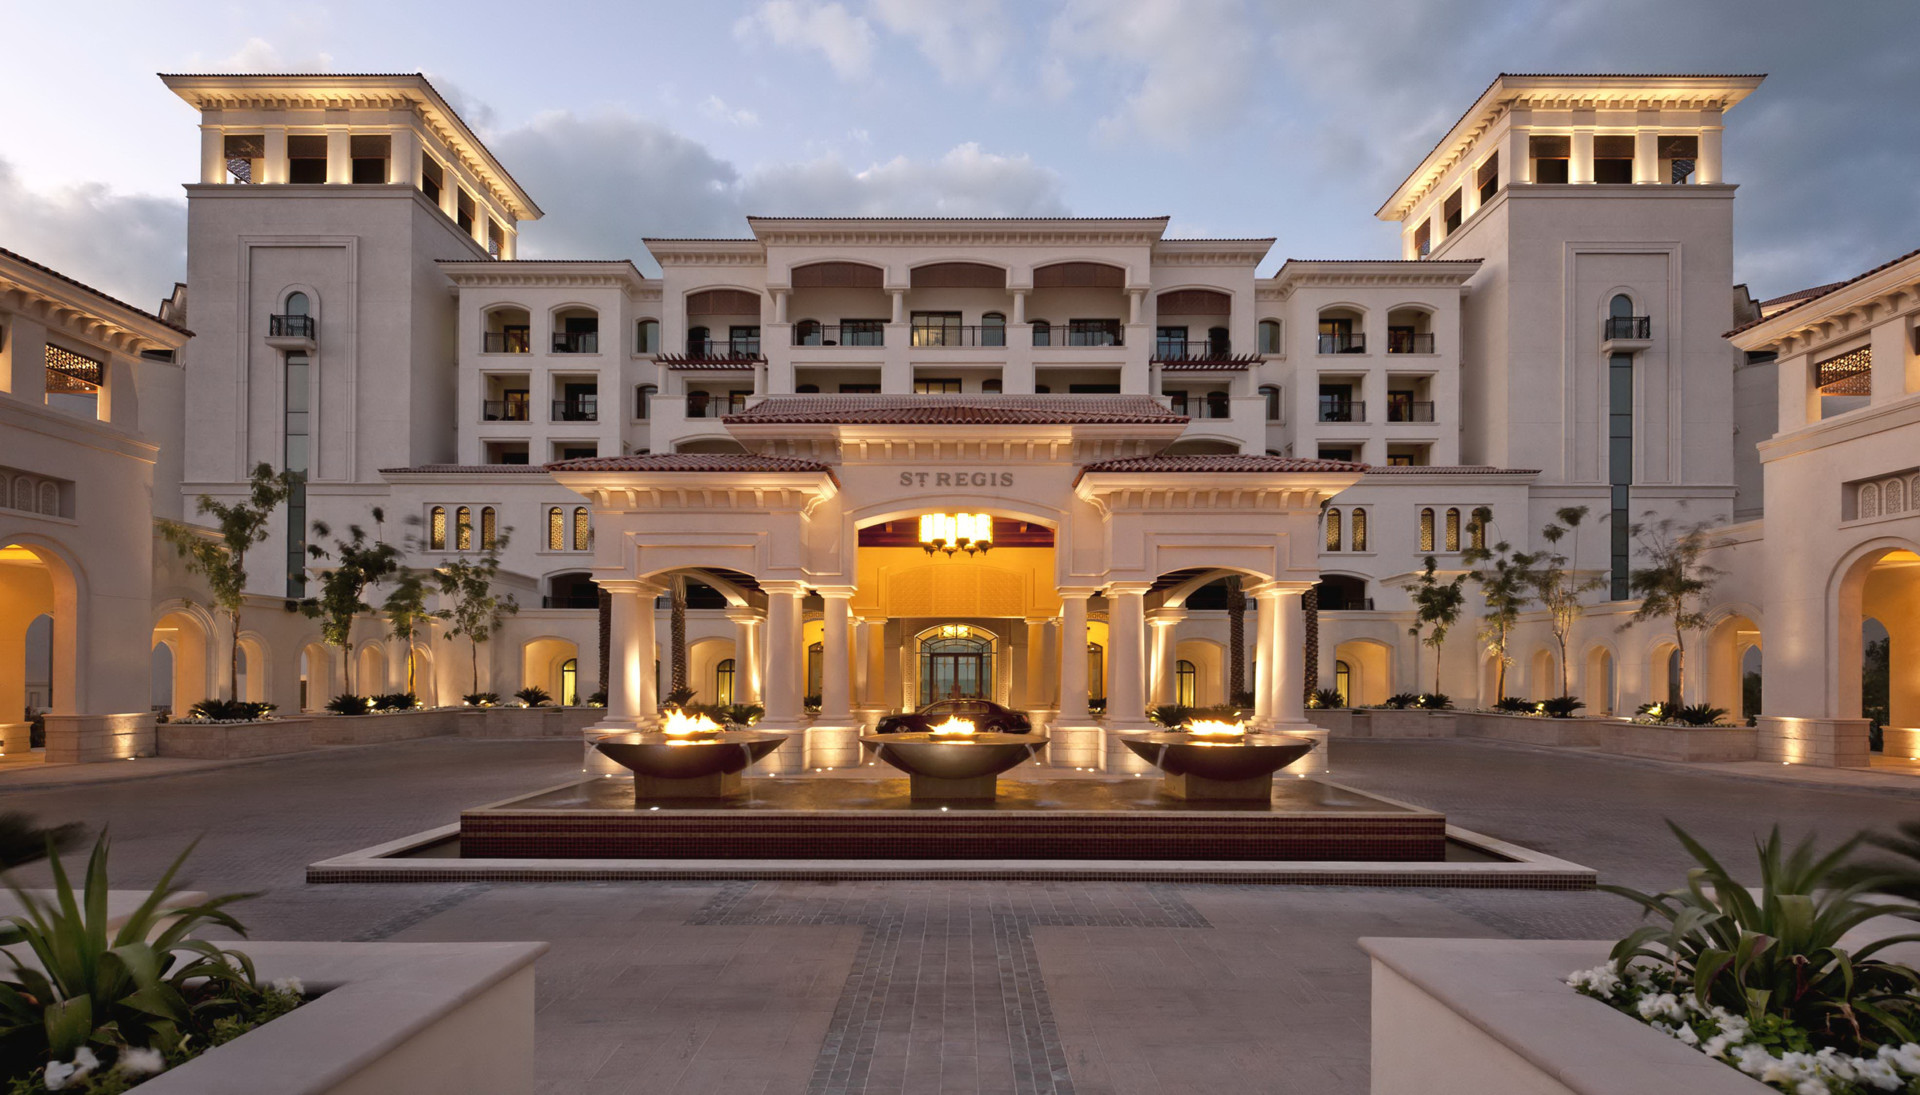 St regis saadiyat island resort abu dhabi original travel for St regis